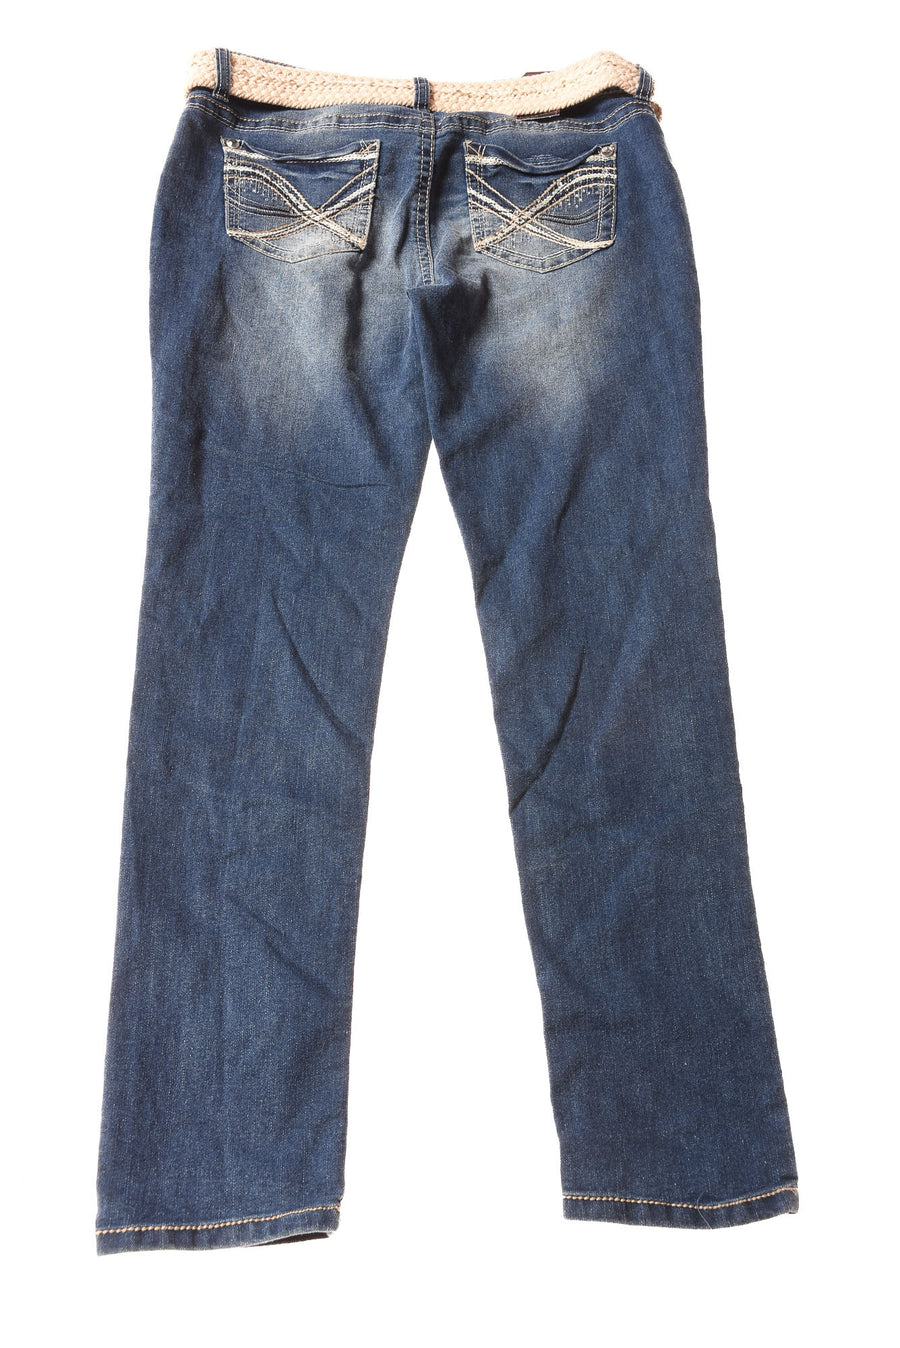 NEW No Boundaries Women's Jeans 13 Blue